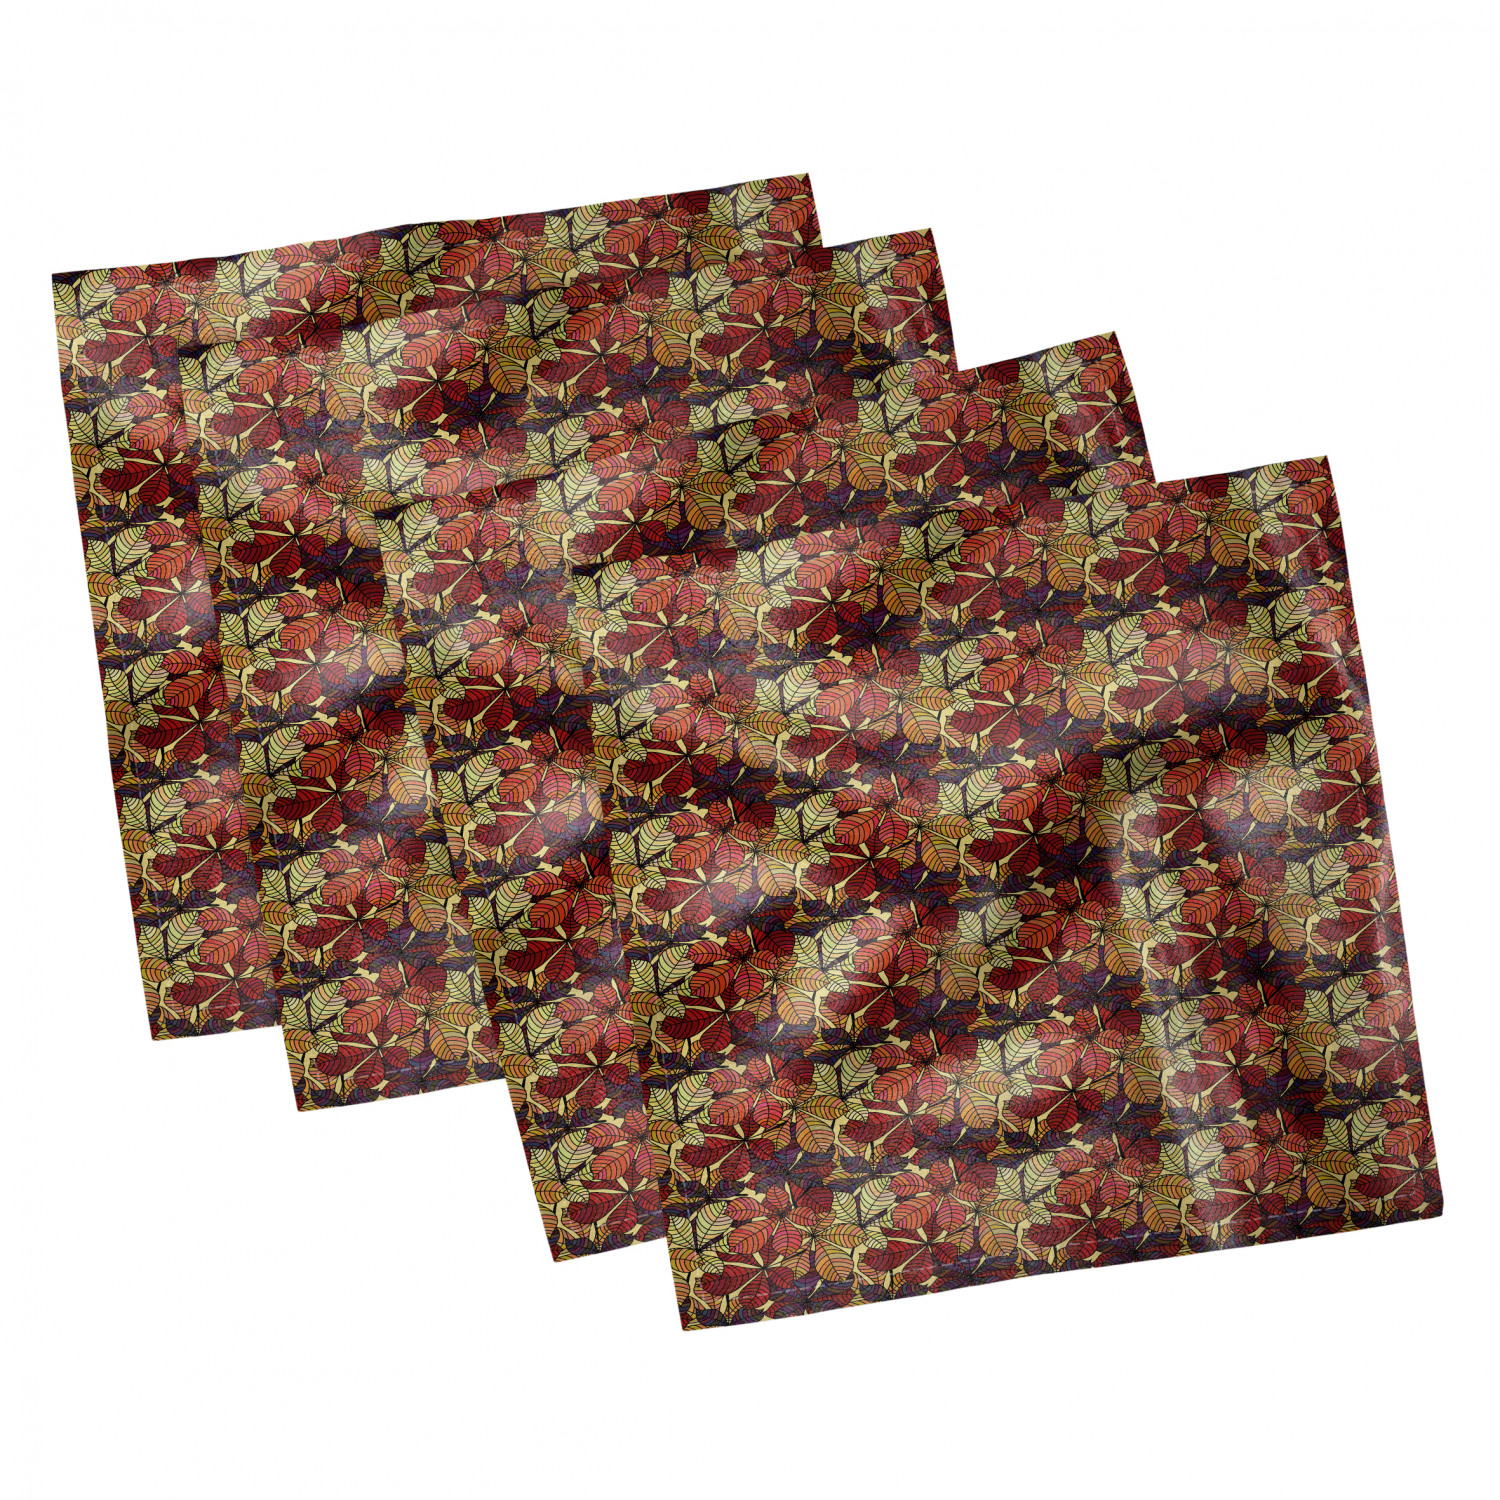 thumbnail 95 - Ambesonne-Leaves-Forest-Decorative-Satin-Napkins-Set-of-4-Party-Dinner-Fabric